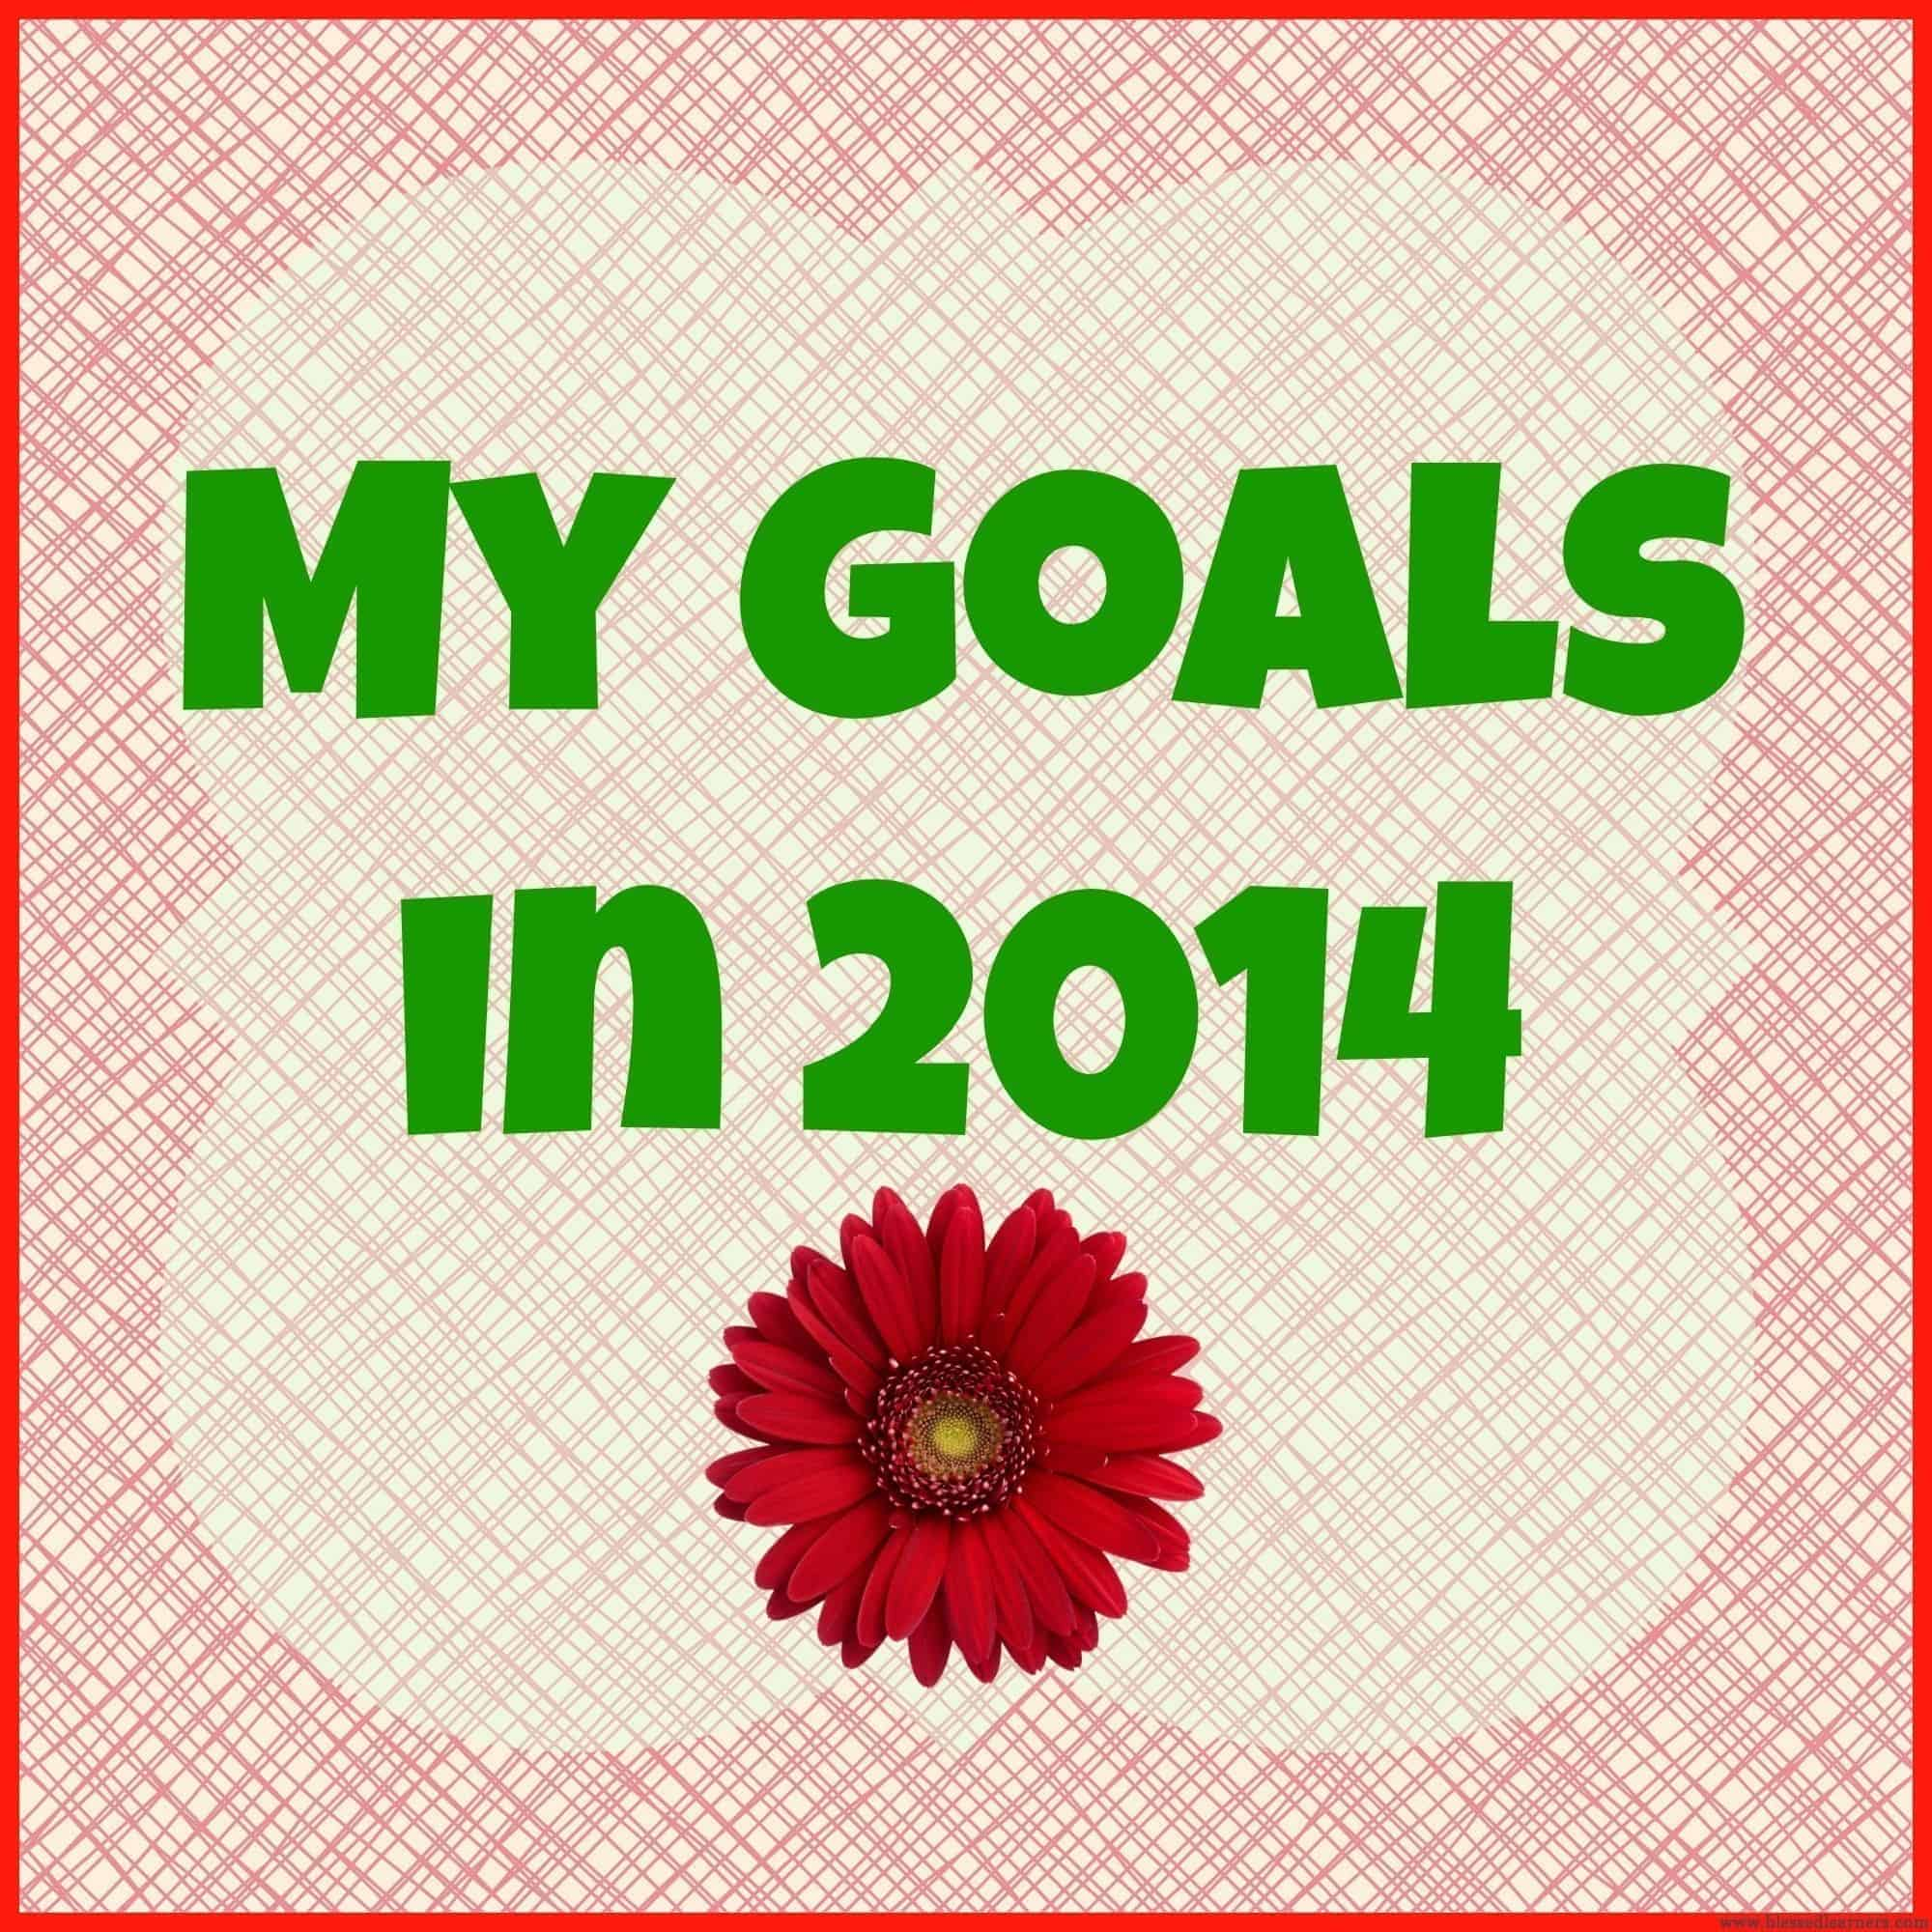 My Goals On February